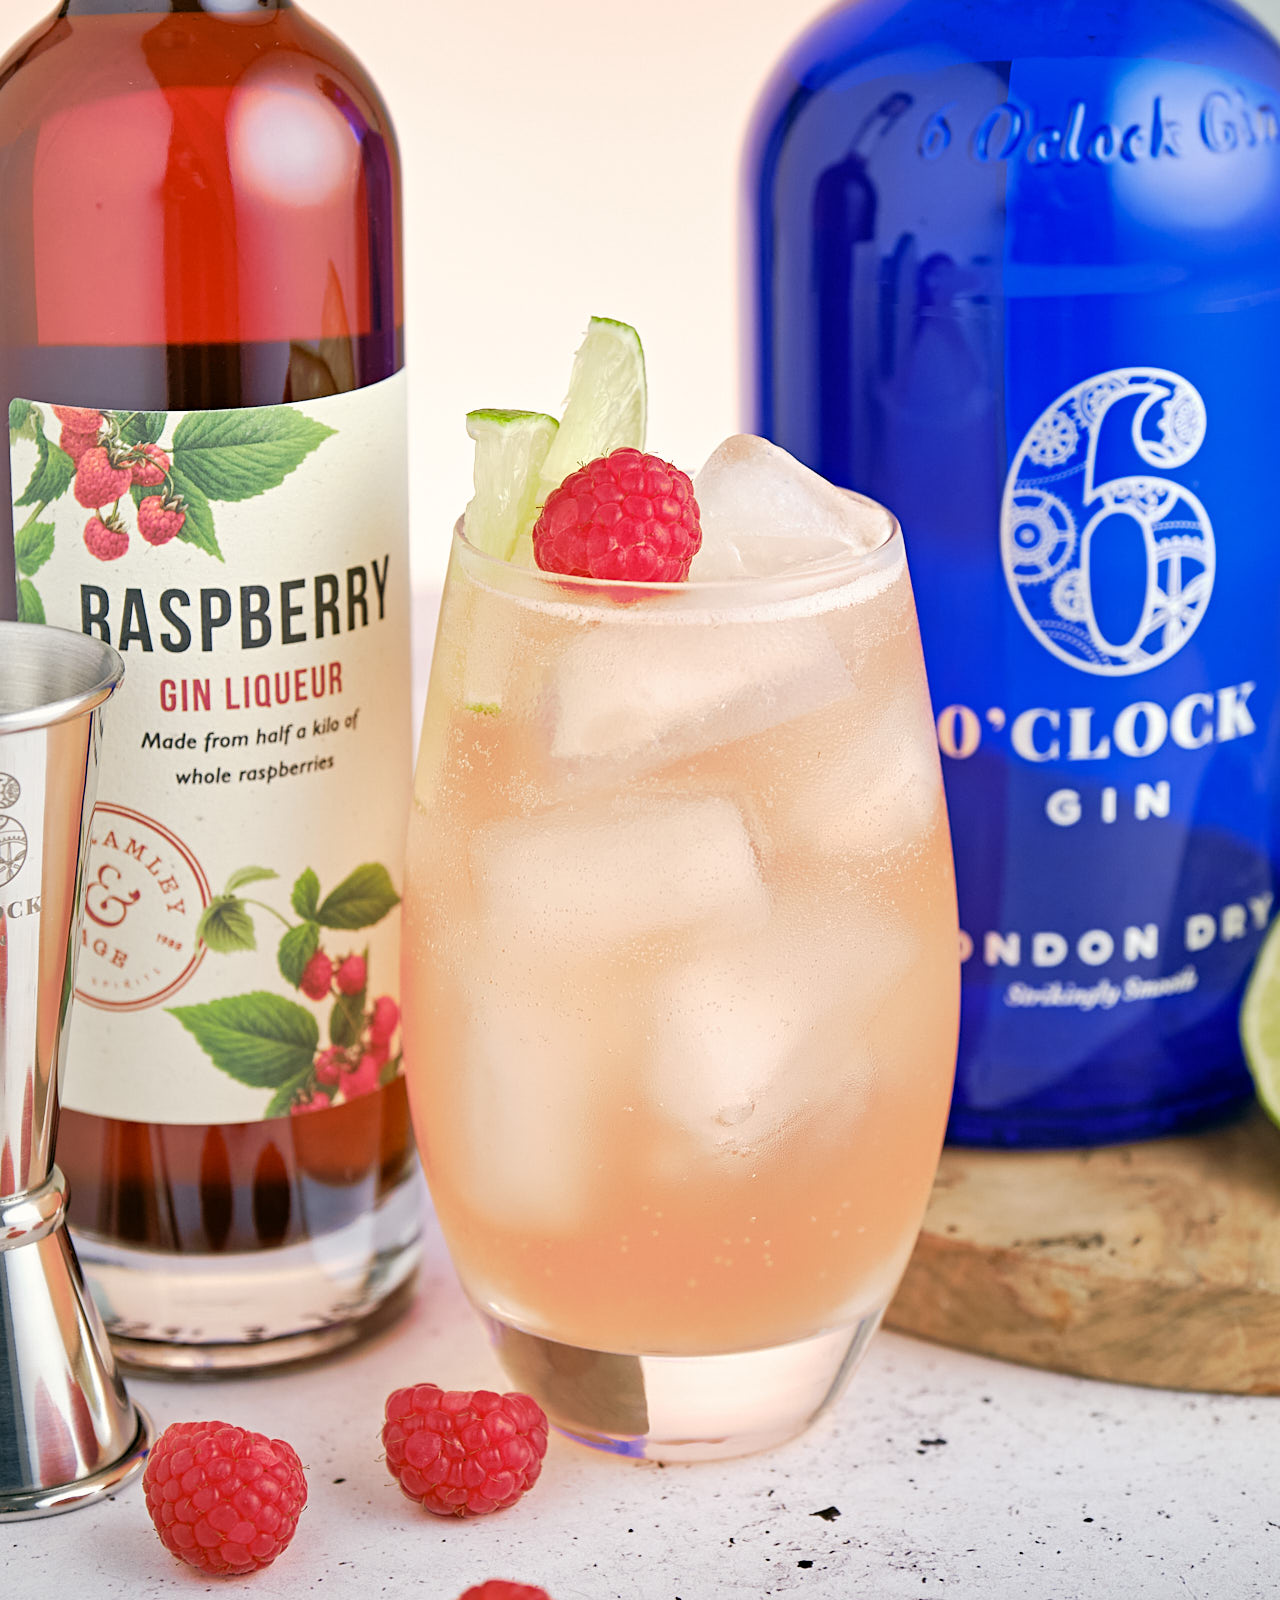 The Floradora gin cocktail - with Raspberry, Lime & Ginger Ales